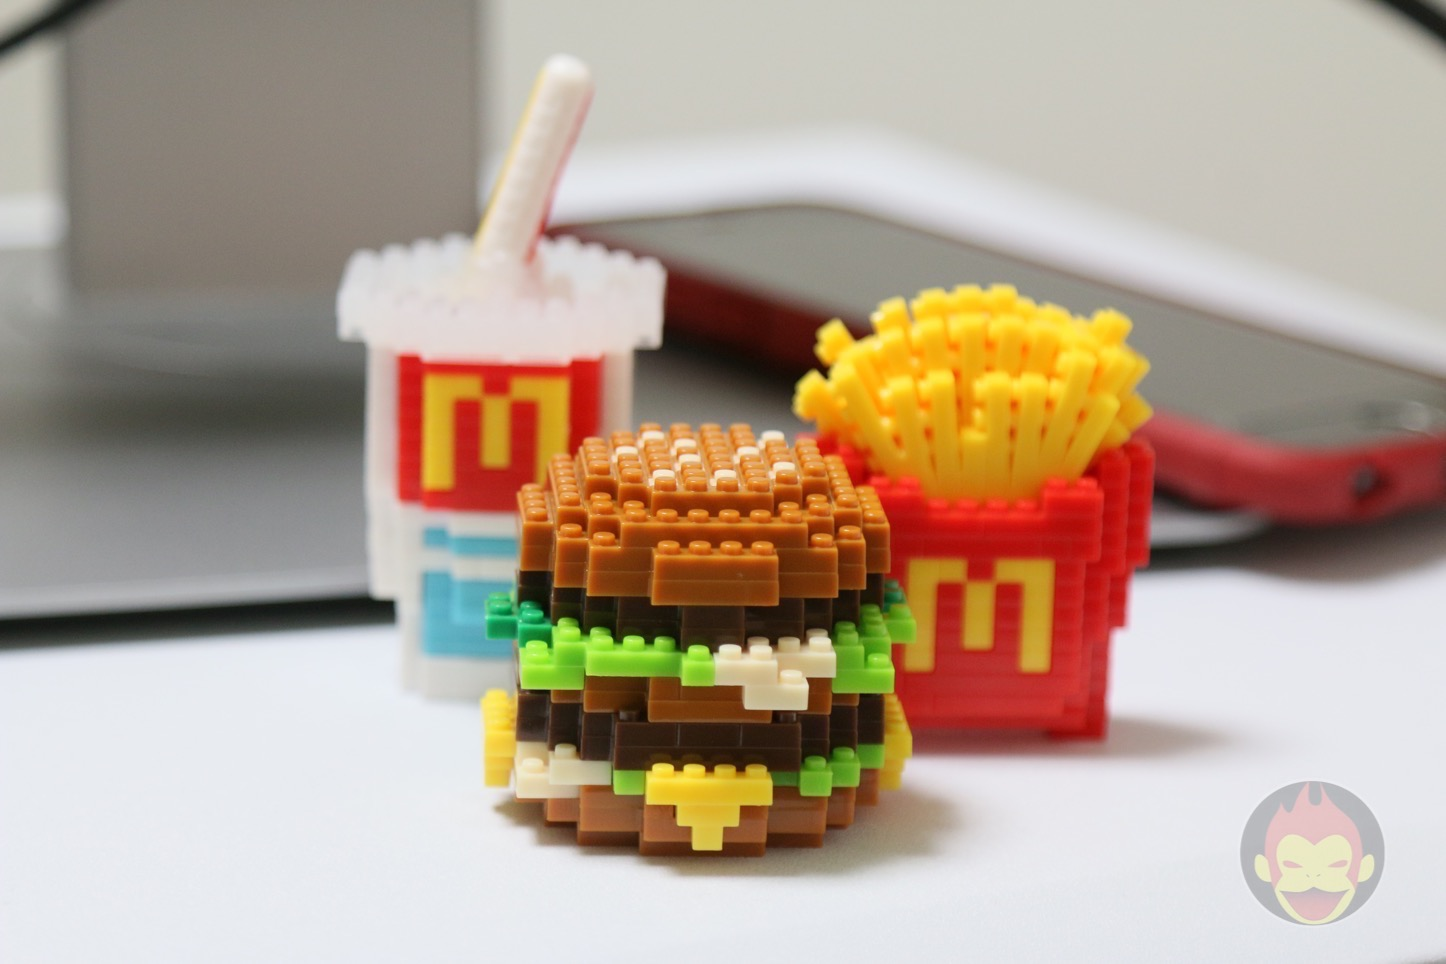 MacDonalds Mega Big Mac Nanoblock